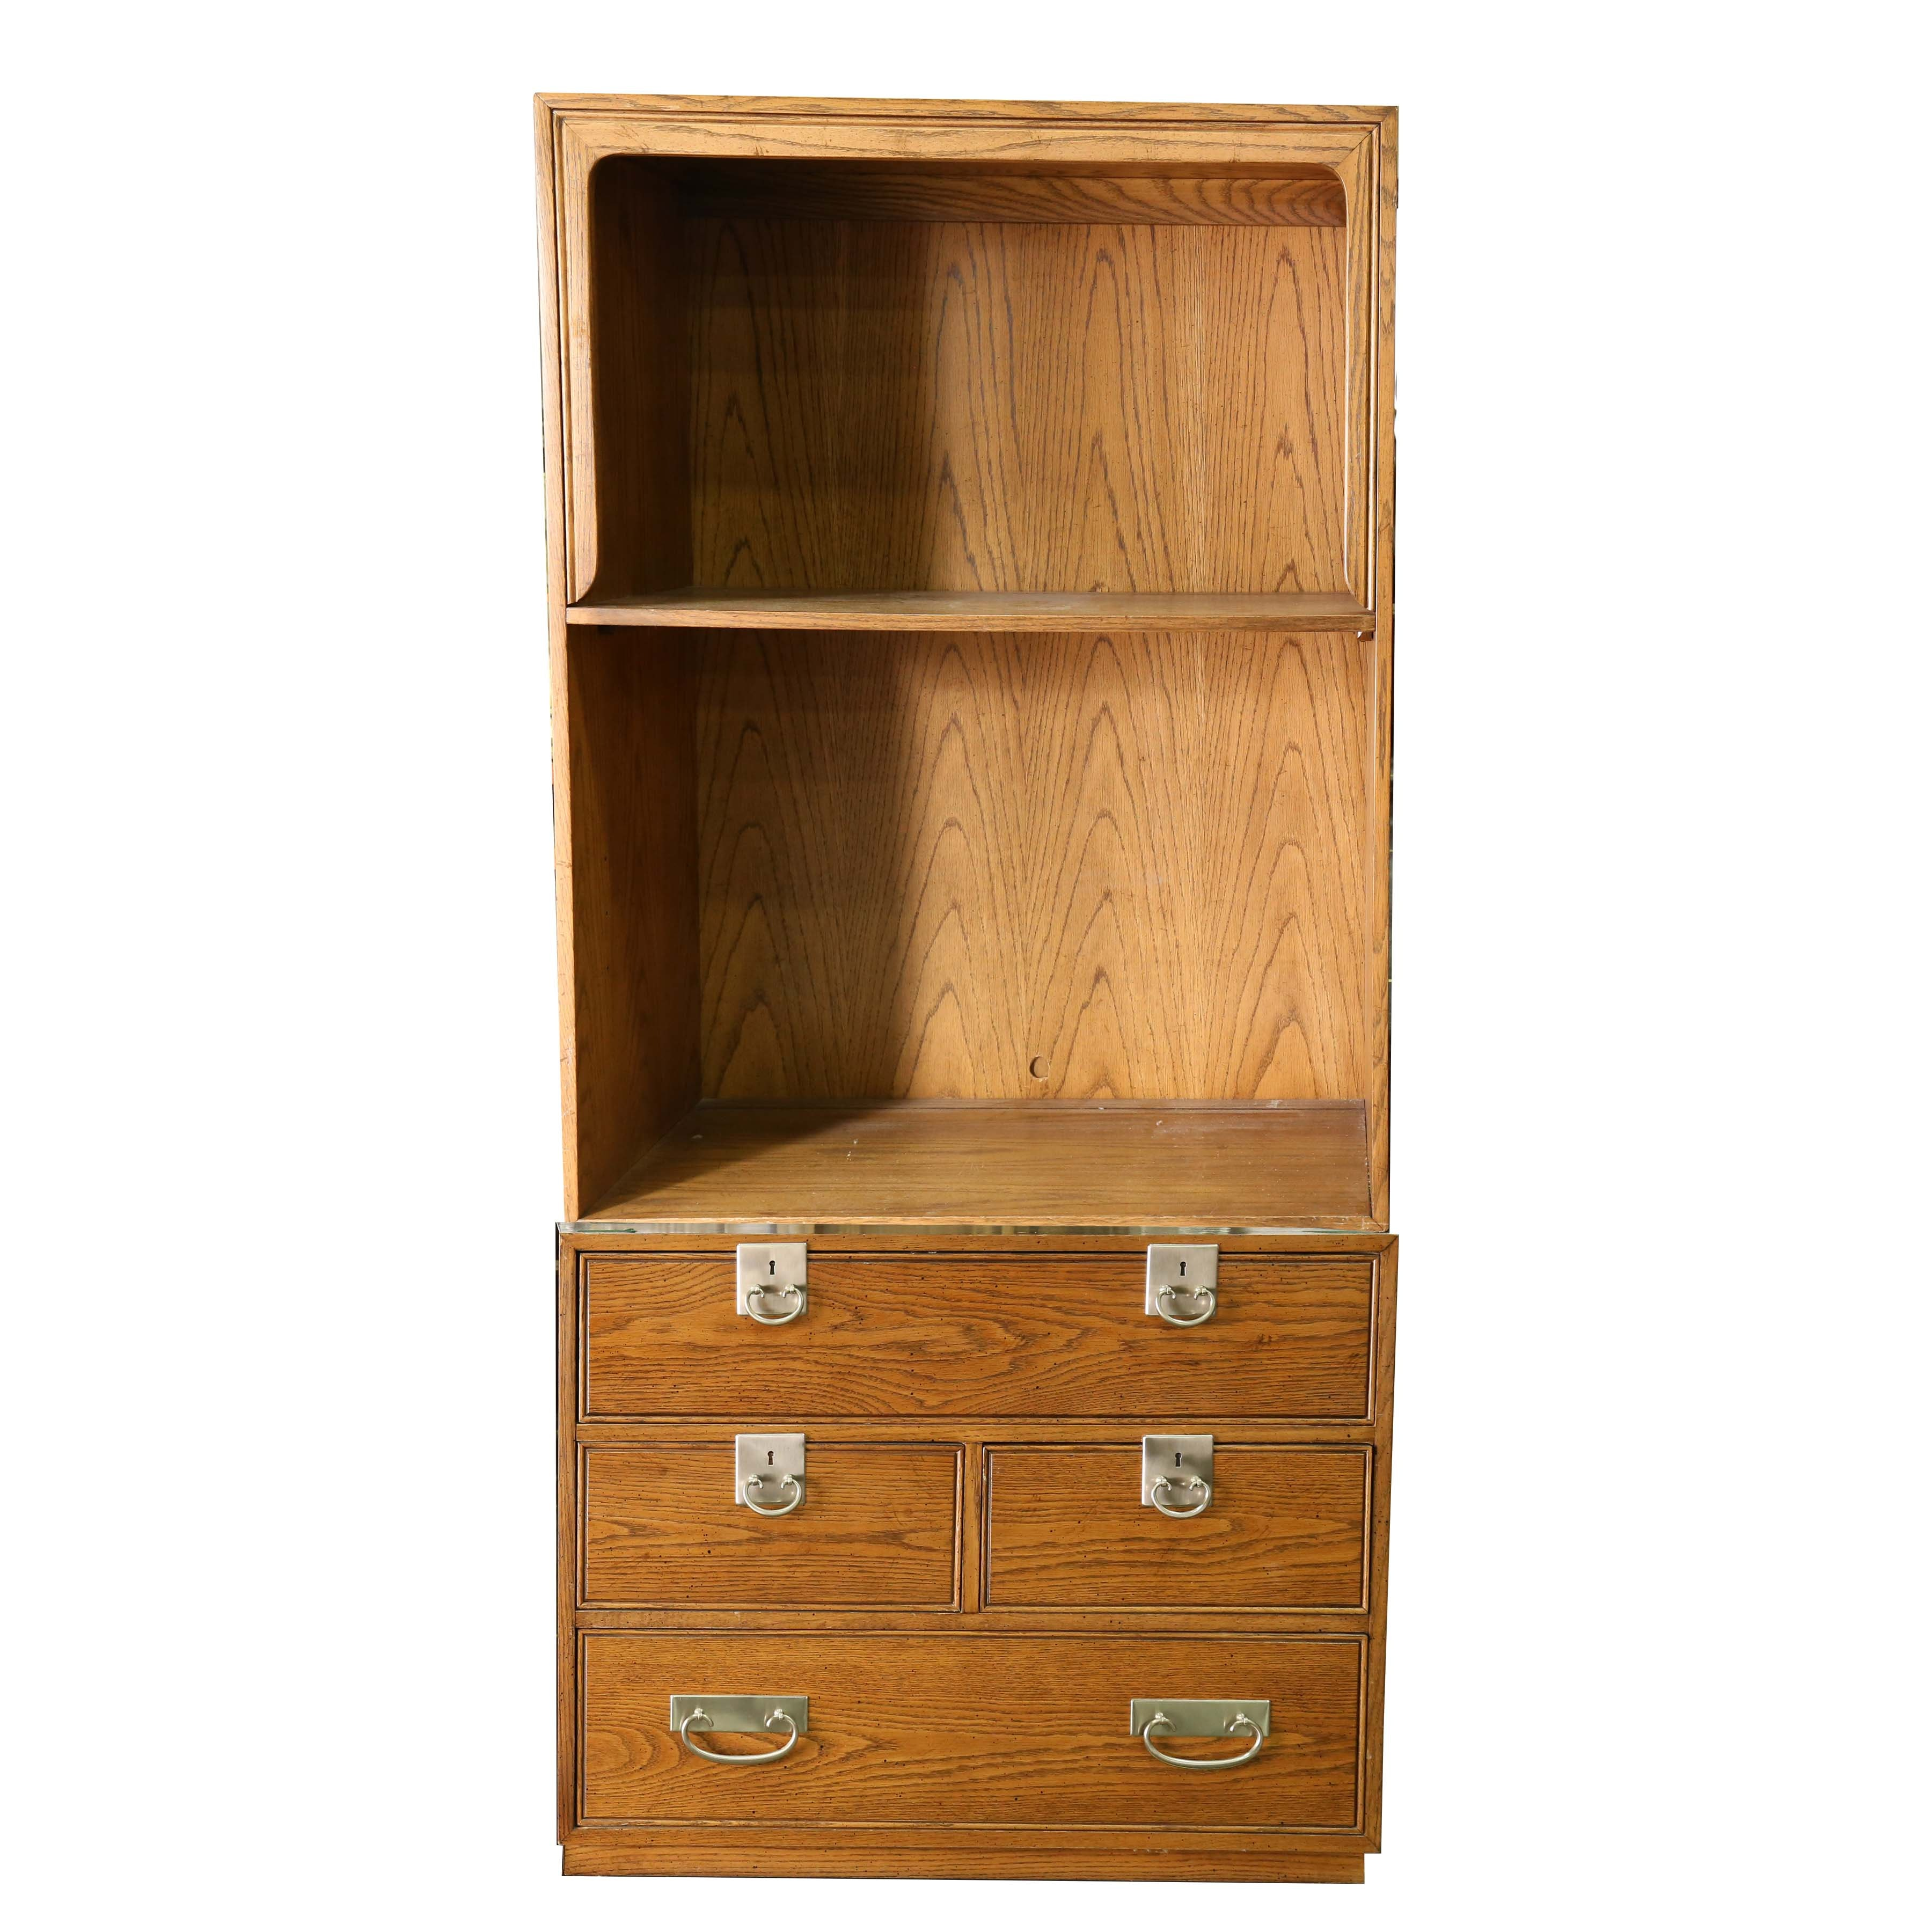 Mid-Century Oak Bookshelf with Drawers by Founders